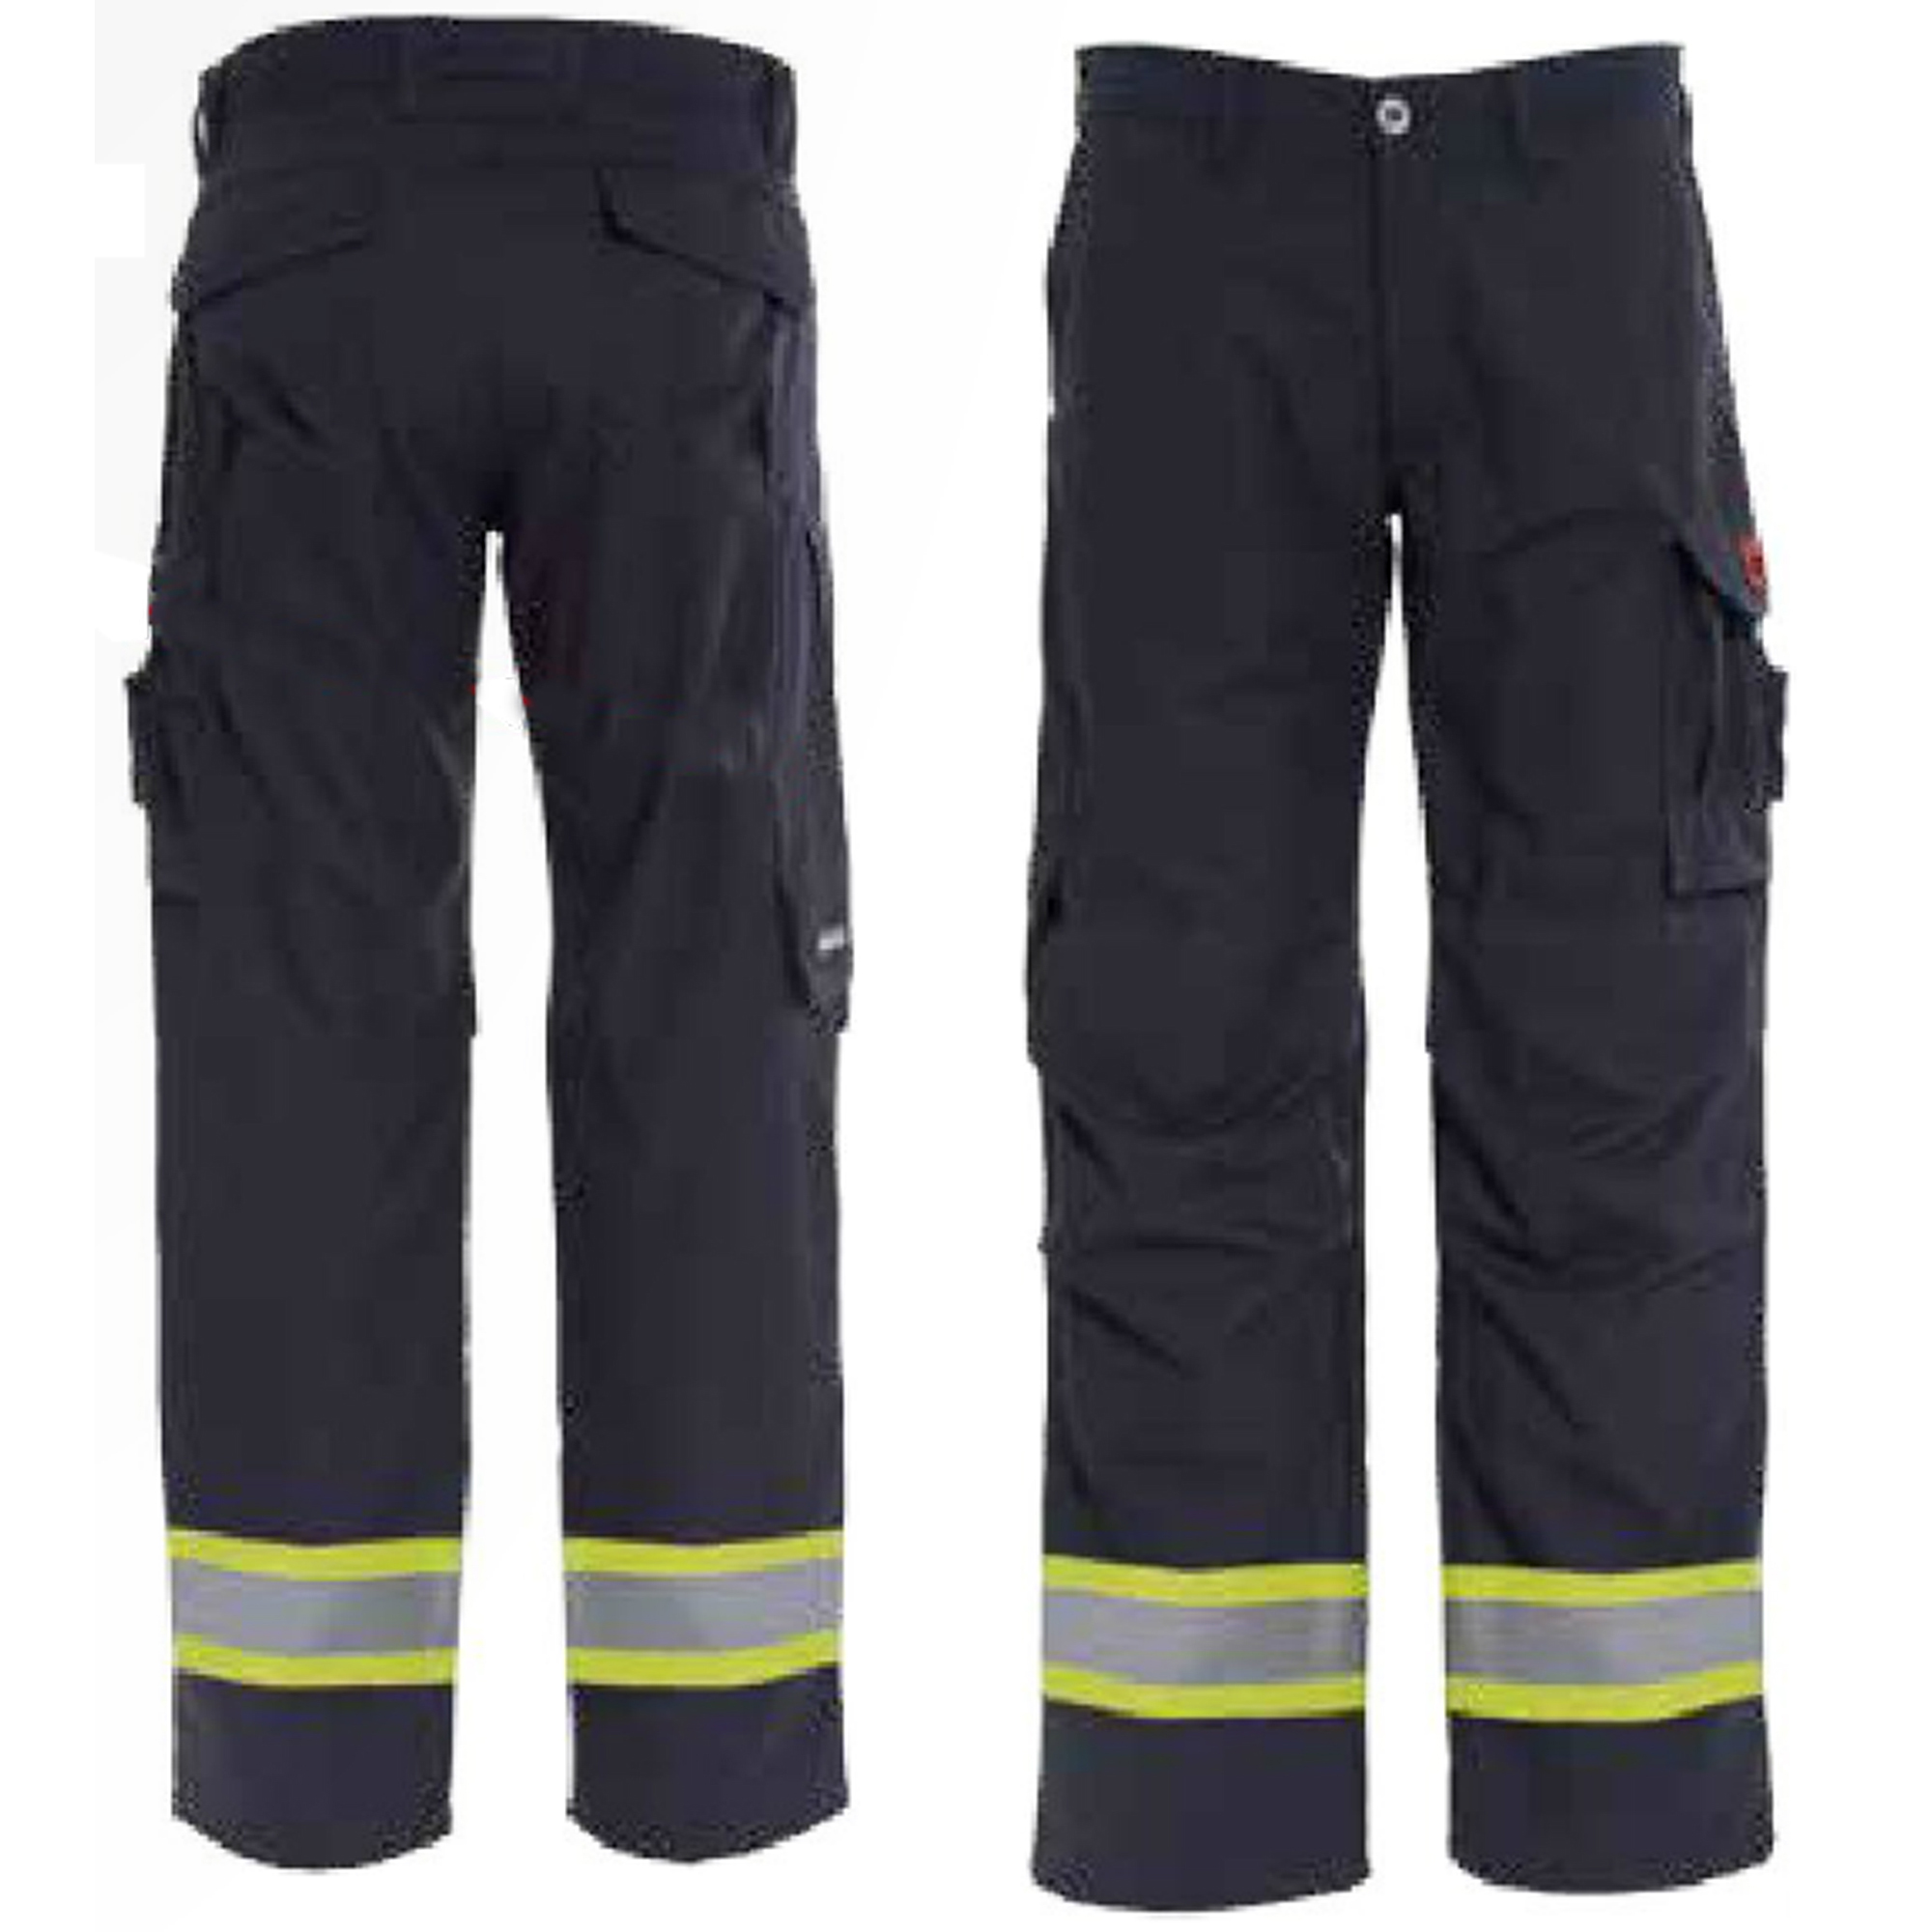 TRANEMO 6021 81 NON-METAL ARC FLASH TROUSERS - 9.5 CAL/CM²